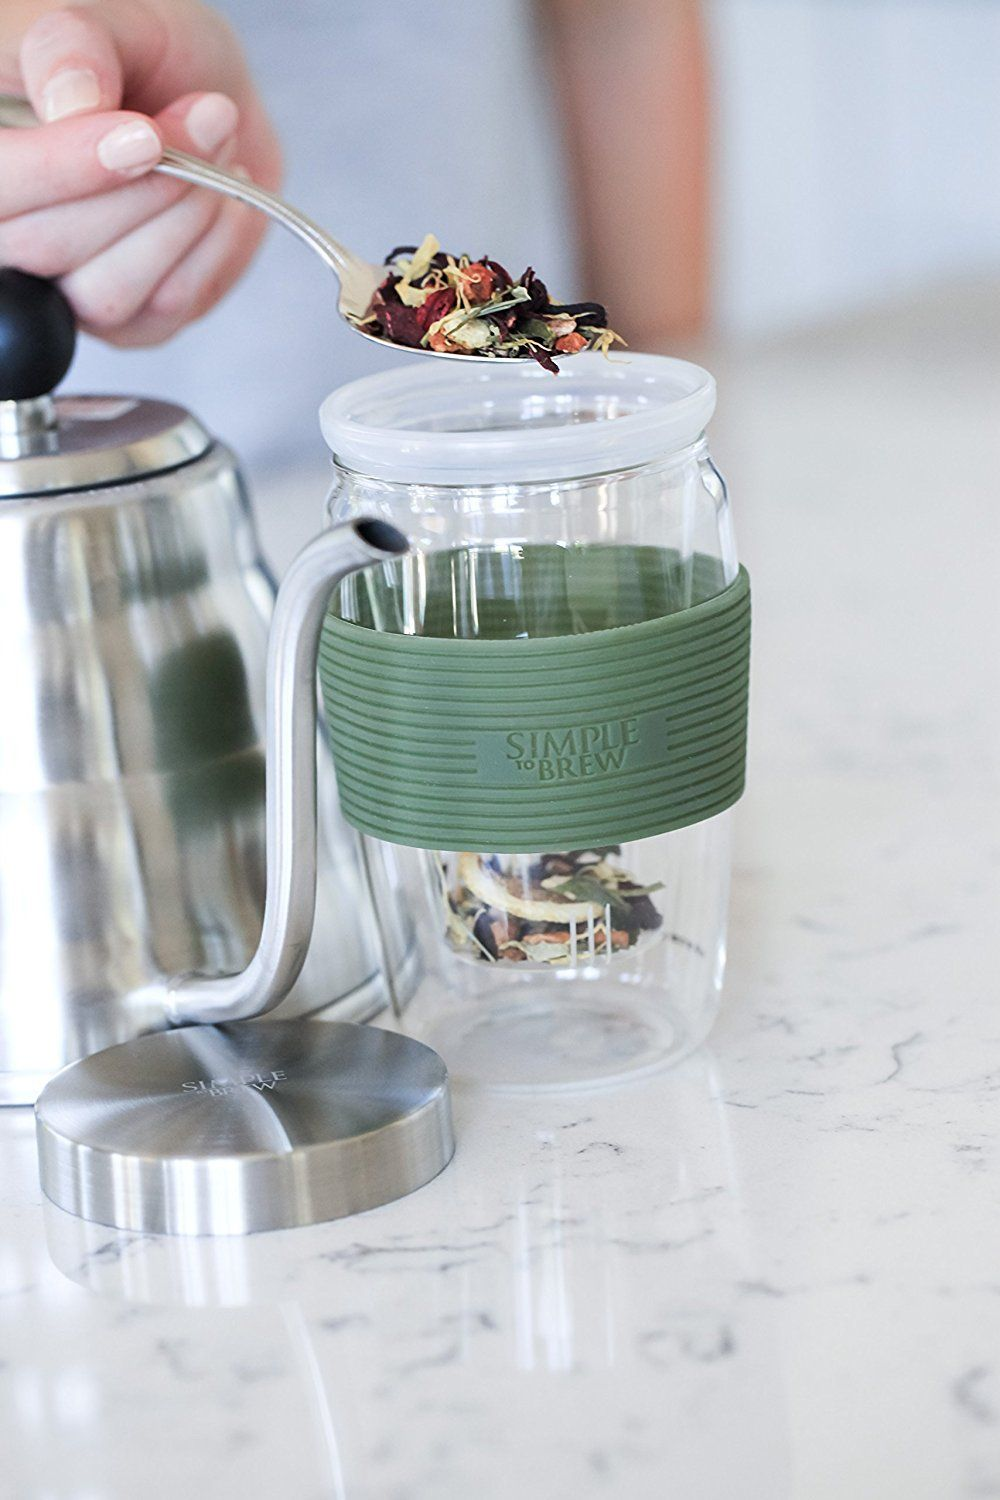 Simple to Brew Loose Leaf Tea Infuser Cup with